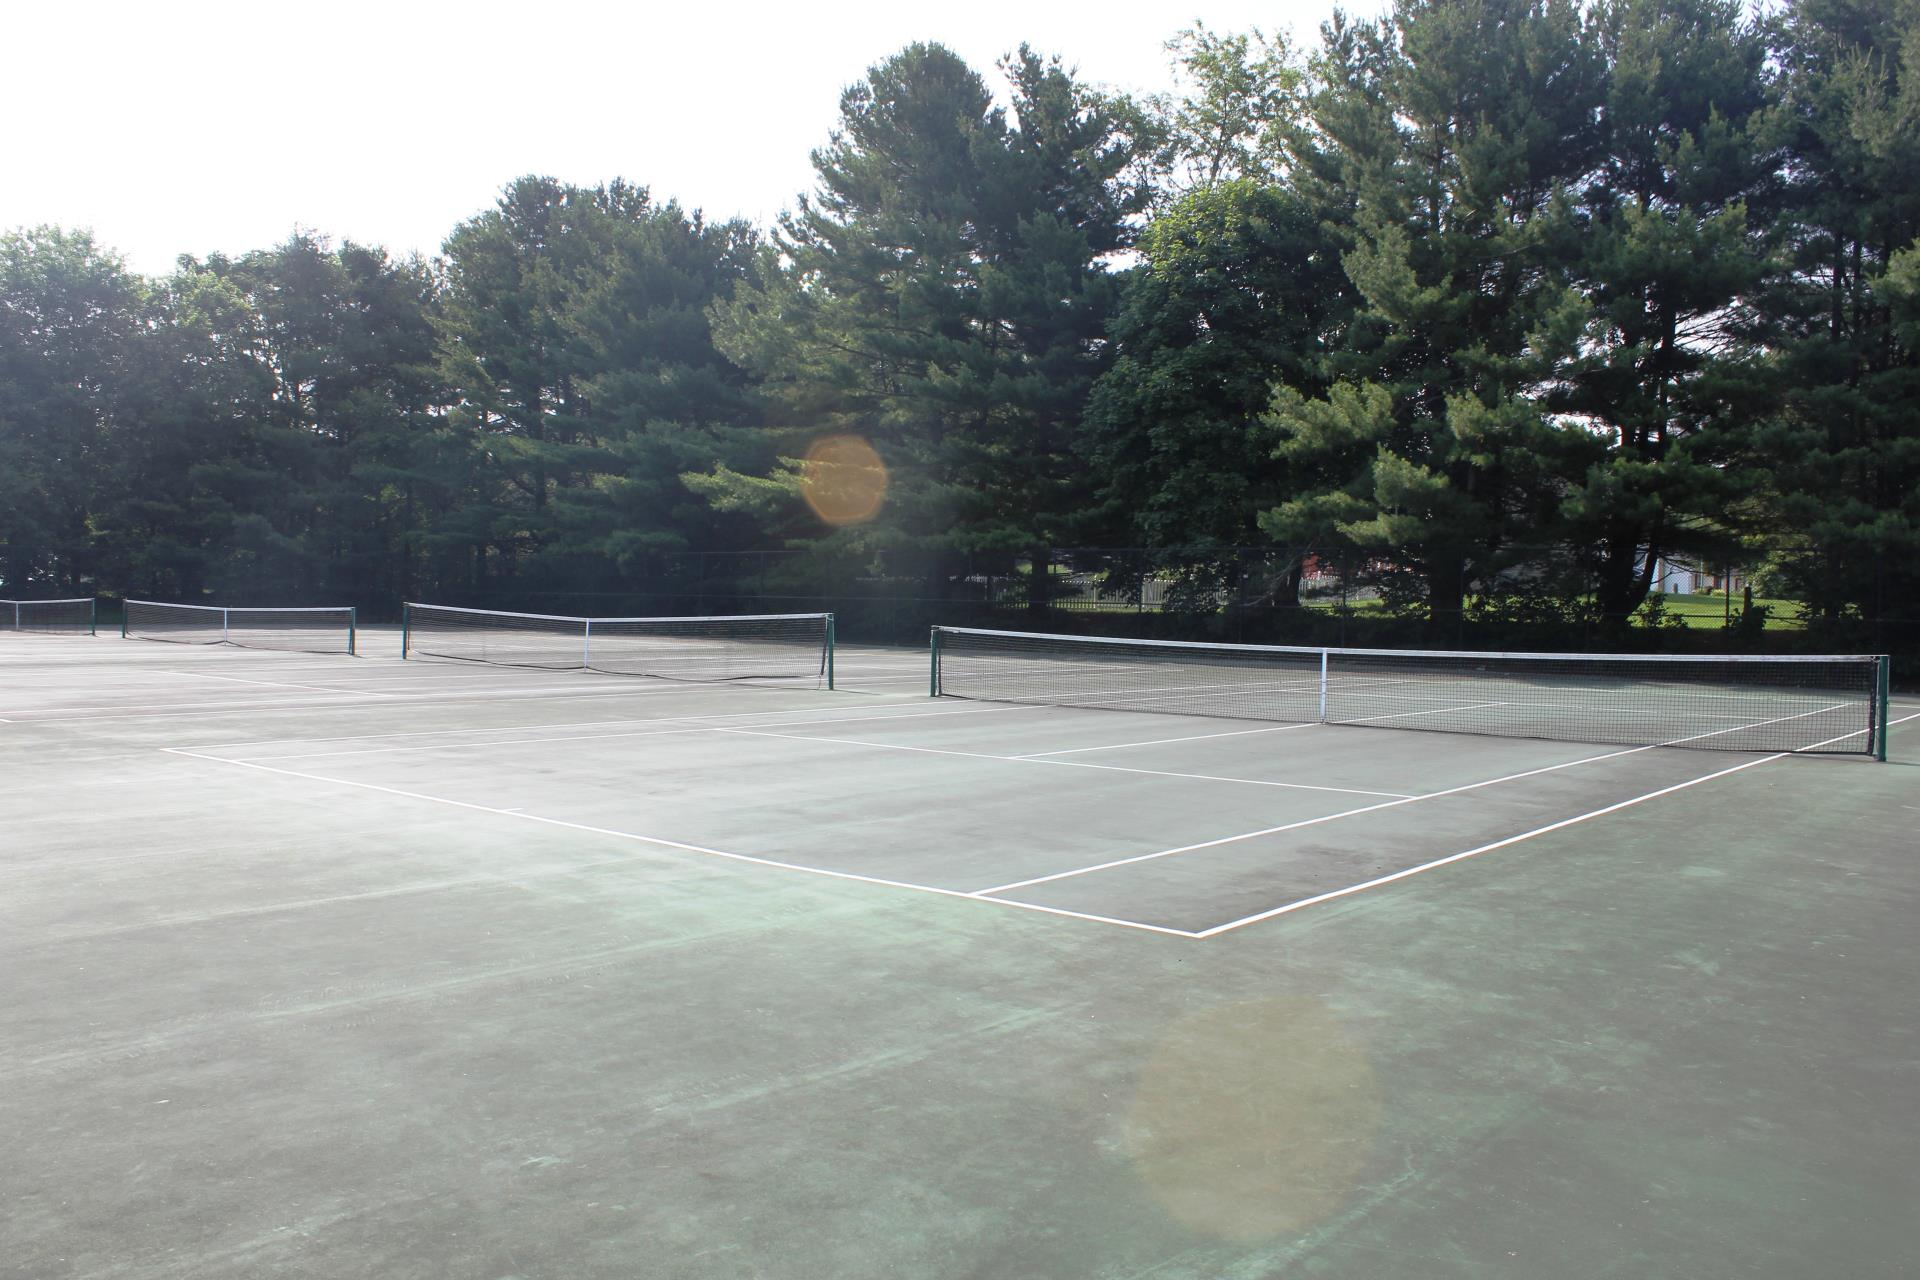 Cecil Community Center Tennis Courts